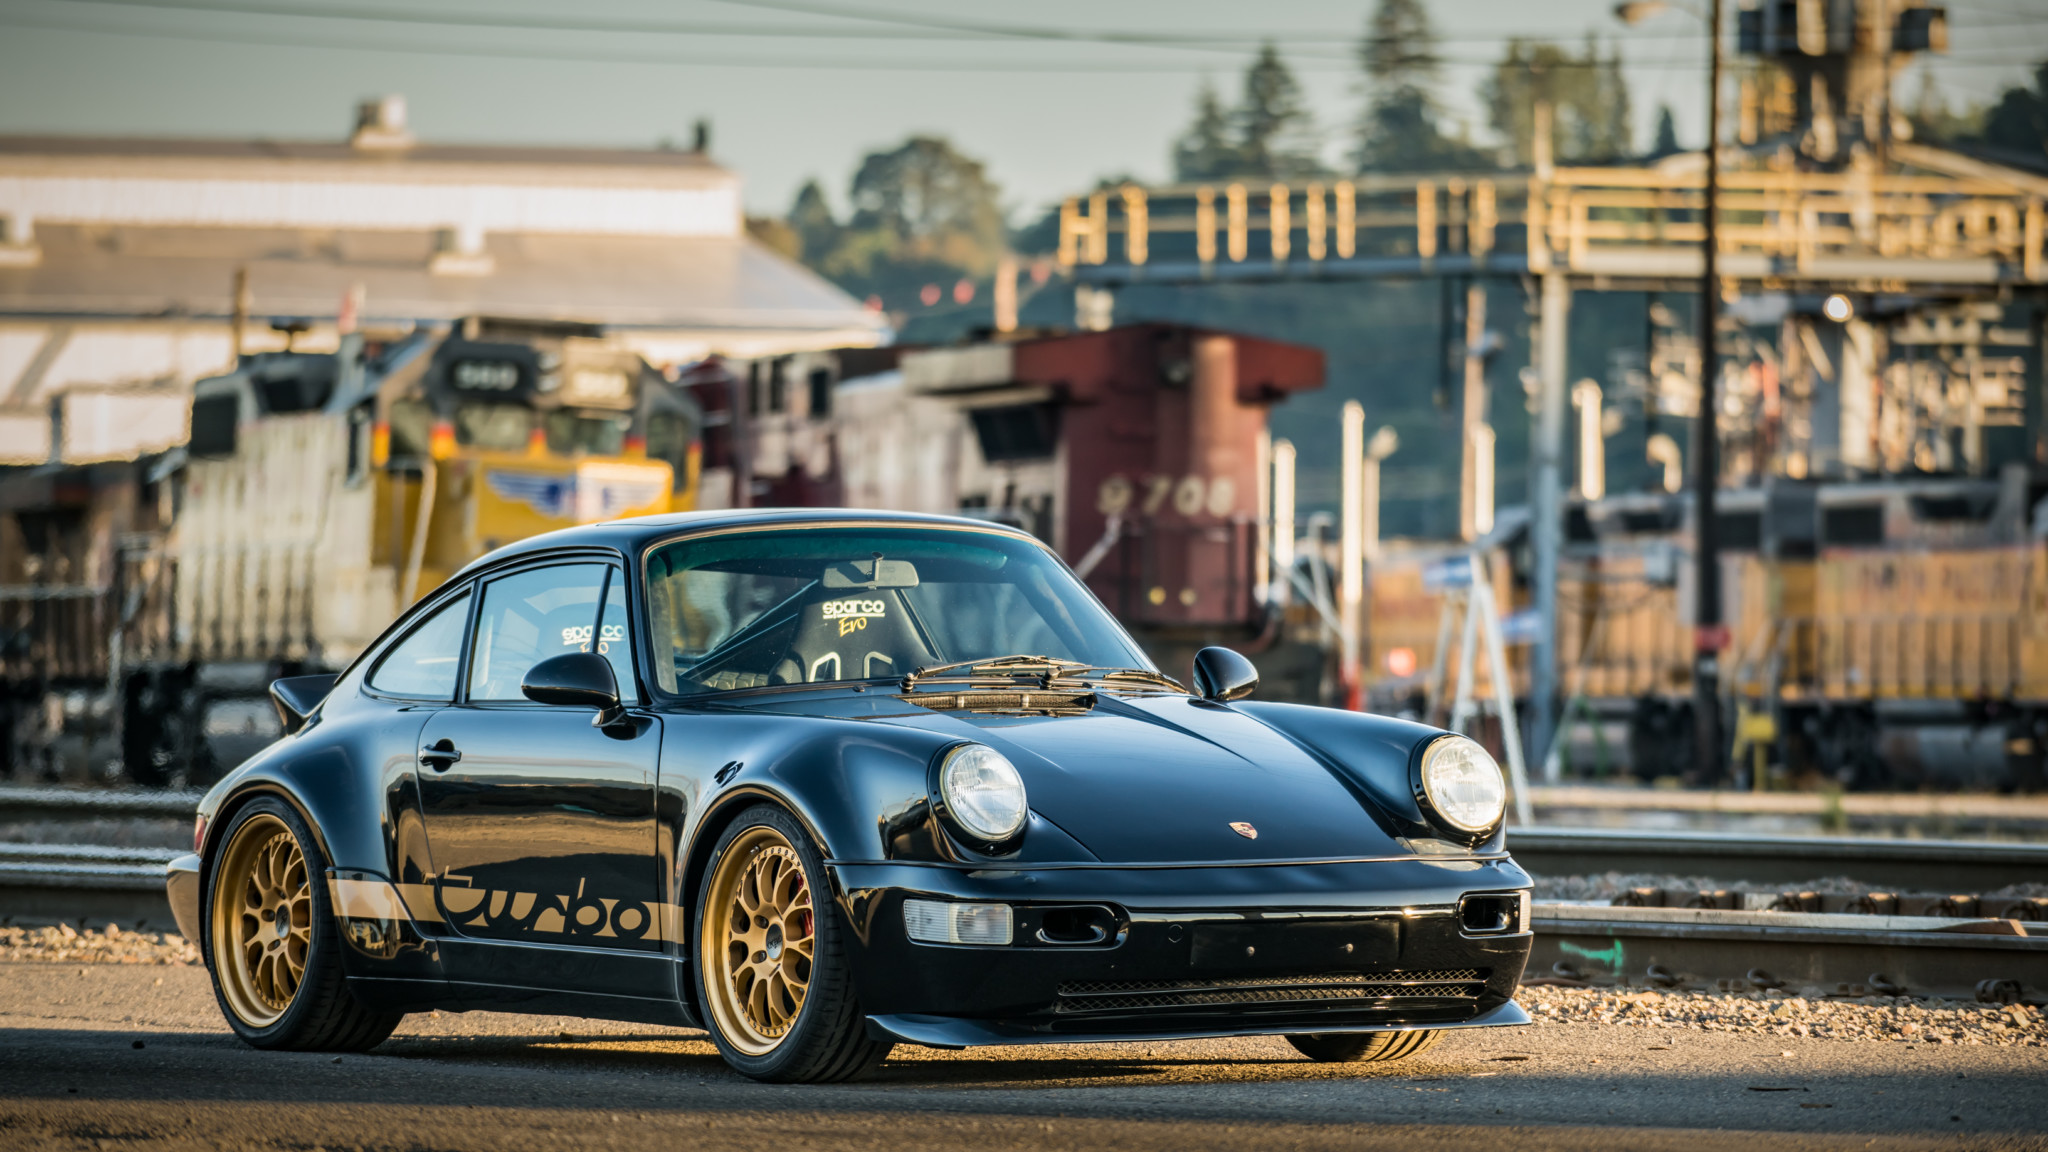 1991 Porsche 964 Turbo Hd Wallpaper Background Image 2048x1152 Id 1018380 Wallpaper Abyss